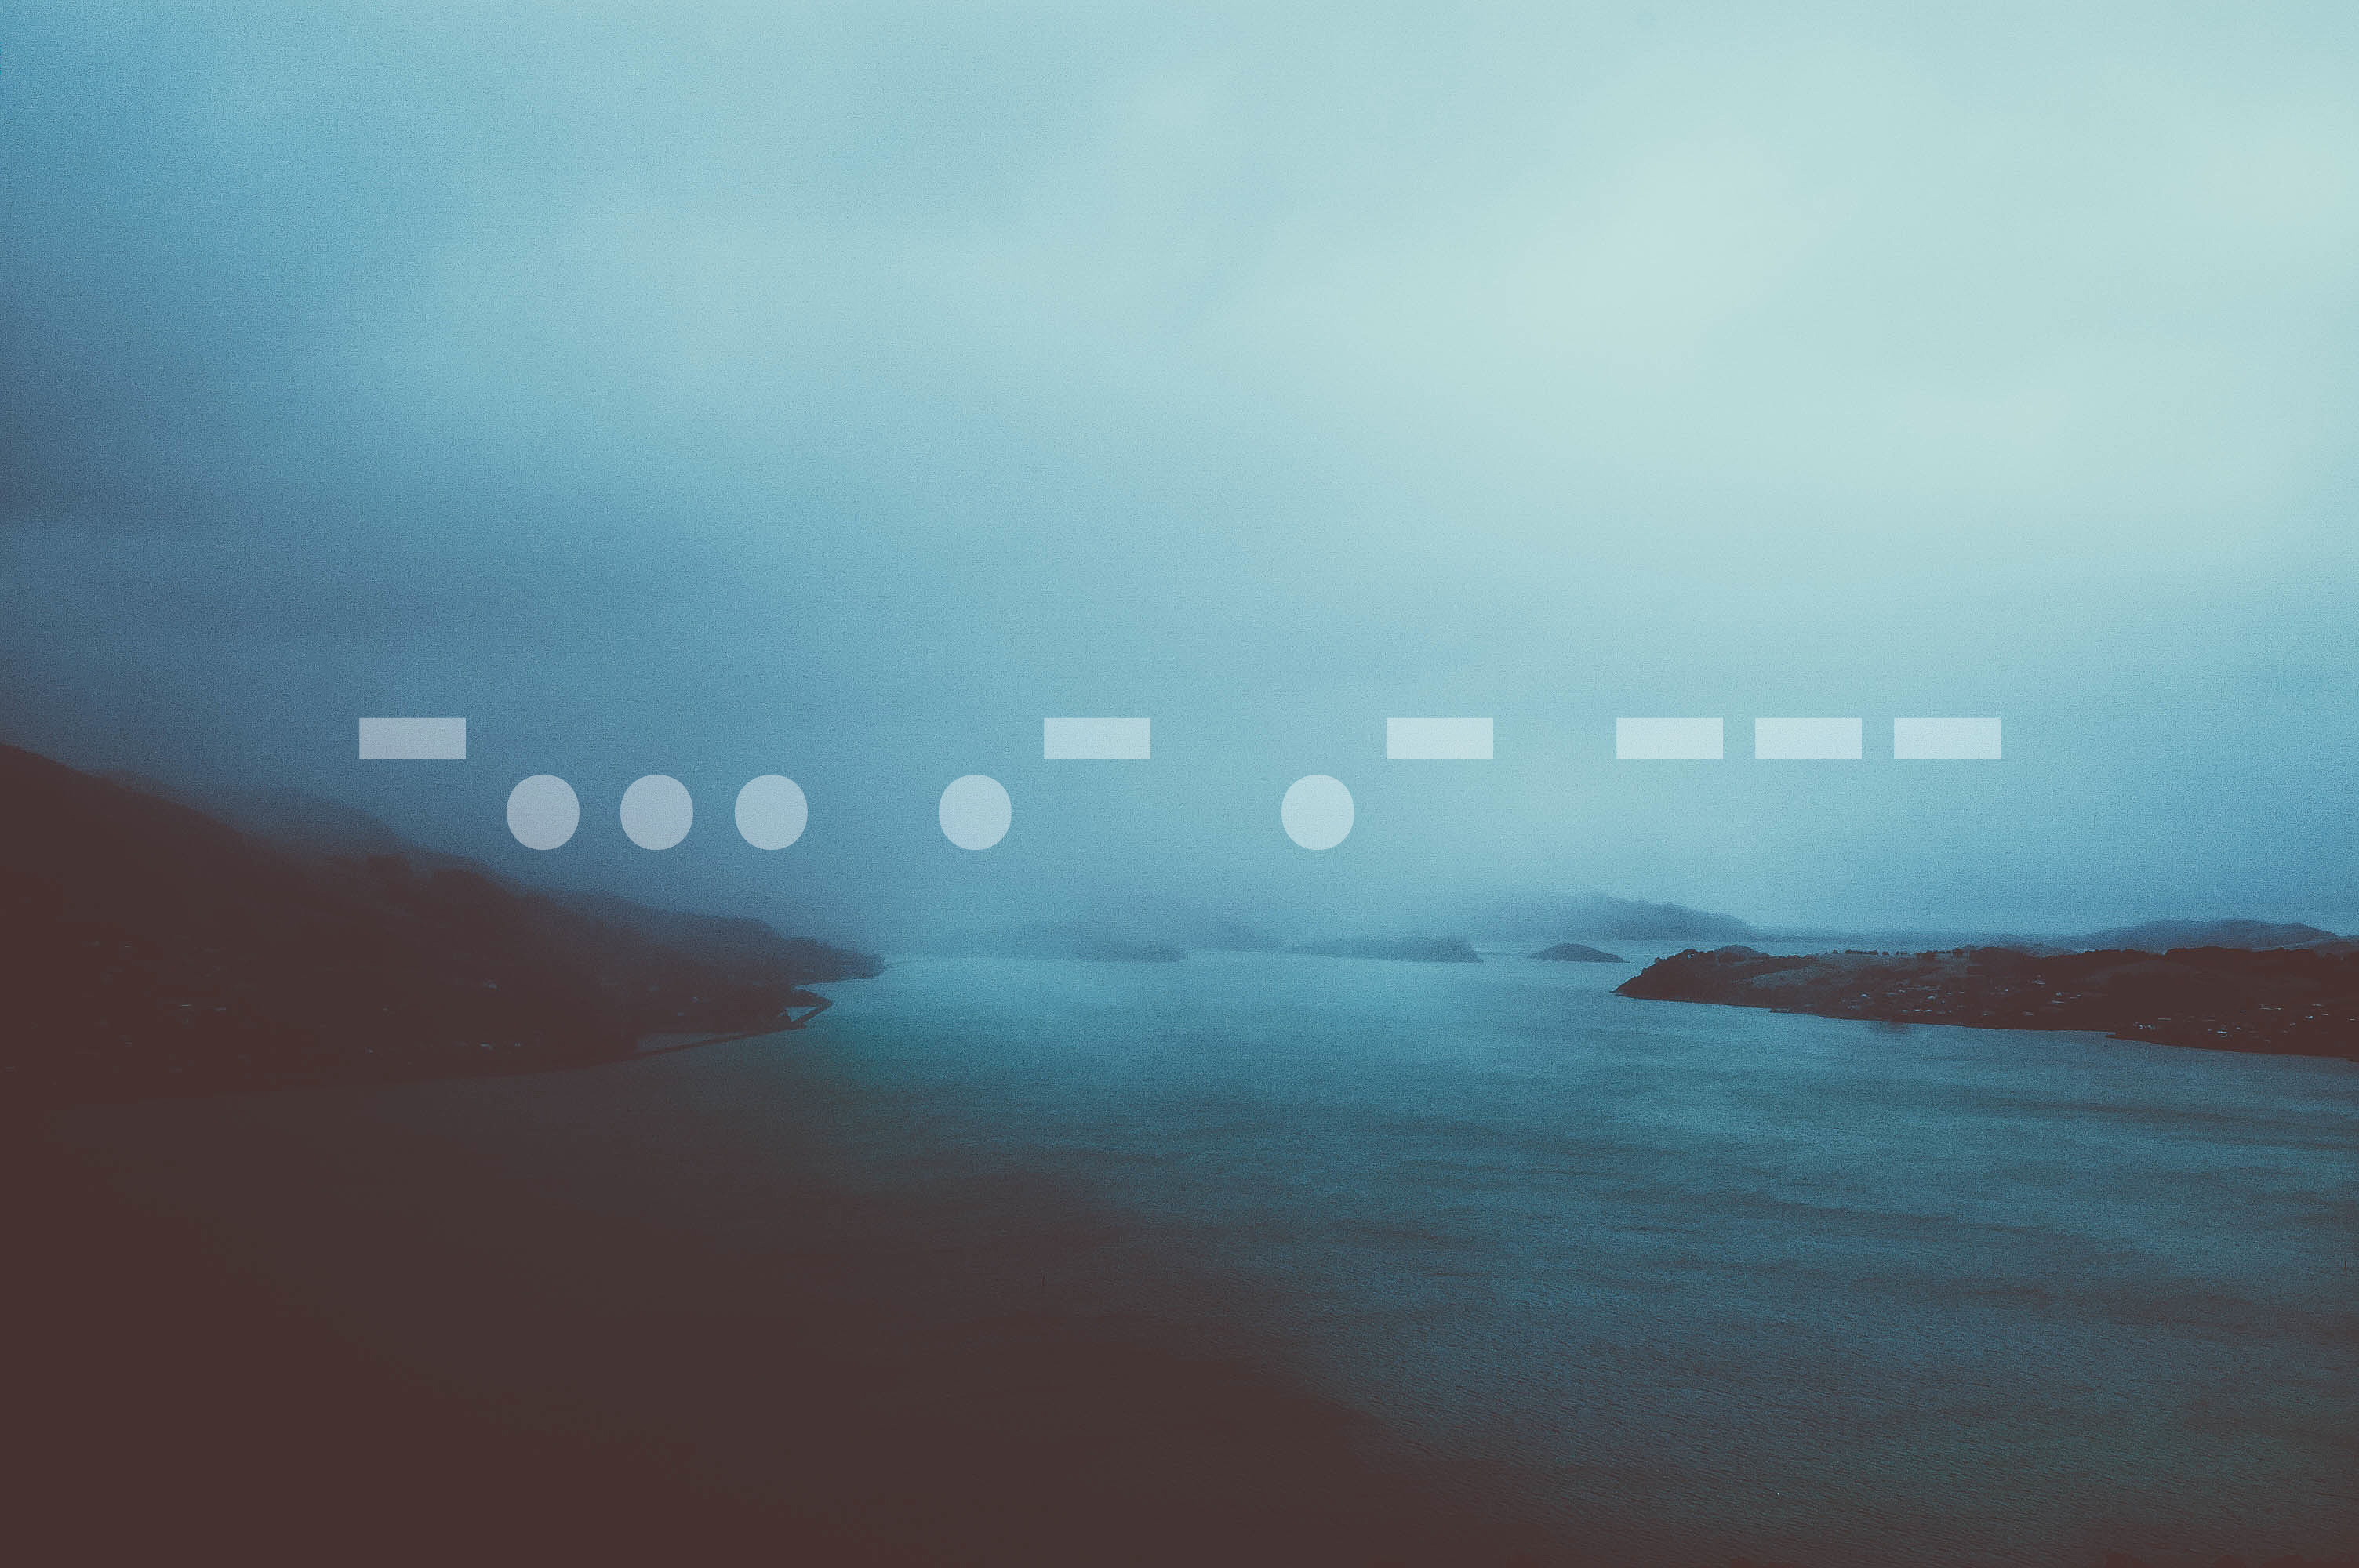 Black And Blue By Being As An Ocean Wallpaper By N04hz Ark On